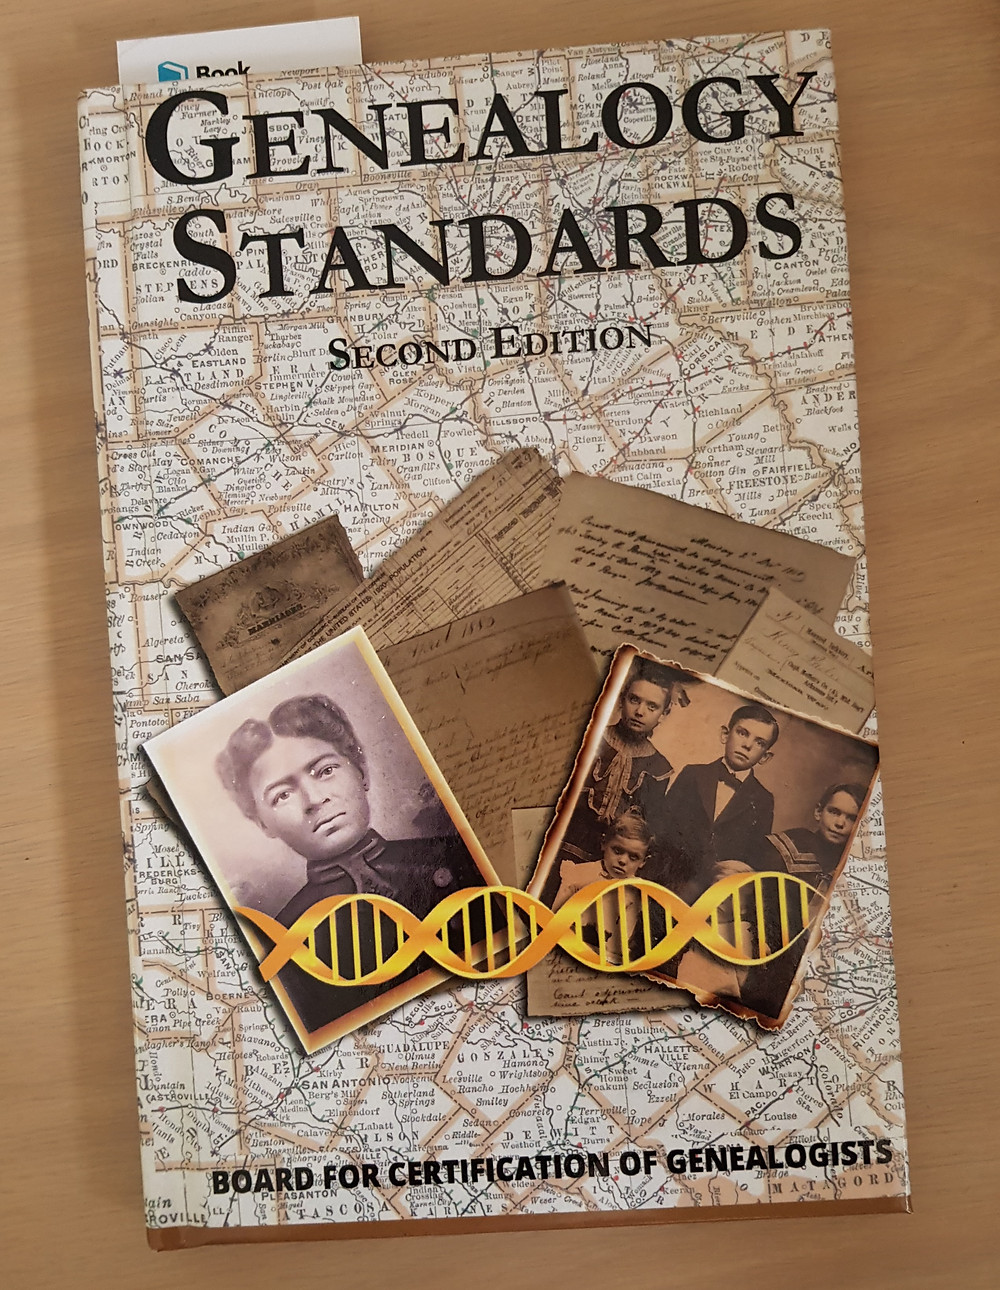 Picture of the book Genealogy Standards. From Your Family Genealogist's own collection.